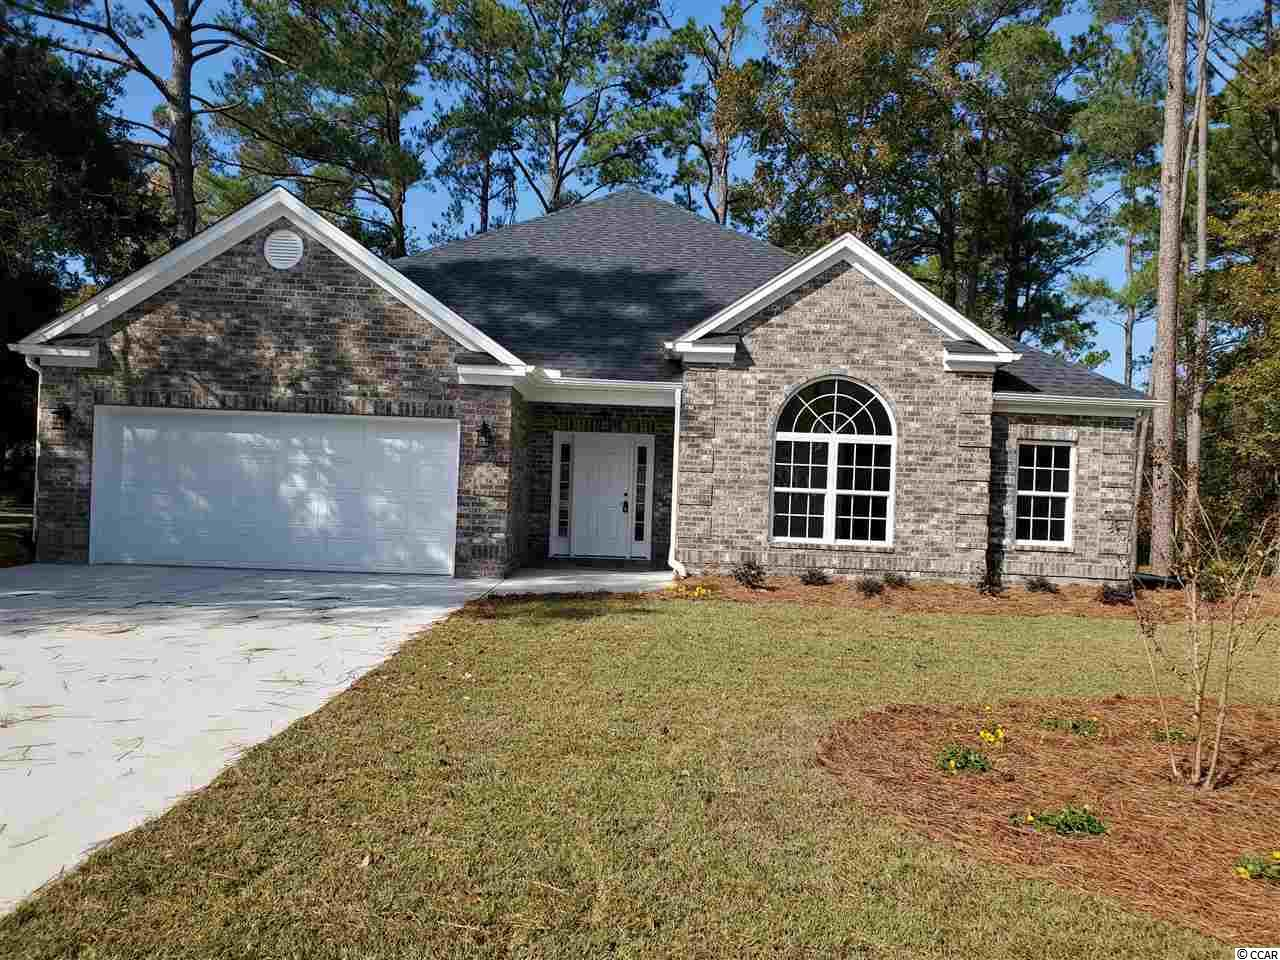 All Brick Custom home with lots of upgrades. Granite counters, stainless appliances, 7x10 pantry, custom tiled shower, vinyl plank flooring throughout with tile flooring in baths, upgraded lighting package. Two ceiling fans on screened back porch. Irrigation system and upgraded landscaping package that includes gardenias, azaleas, crepe myrtles, loropetalum,hydrangeas,ginger lilies, lantana,amaryllis bulbs and much more.  Bayfield is located off of Wachesaw Road and is not in a HOA. You can park your boat or RV here. It is halfway between the Intracoastal Waterway and Murrells Inlet Creek.